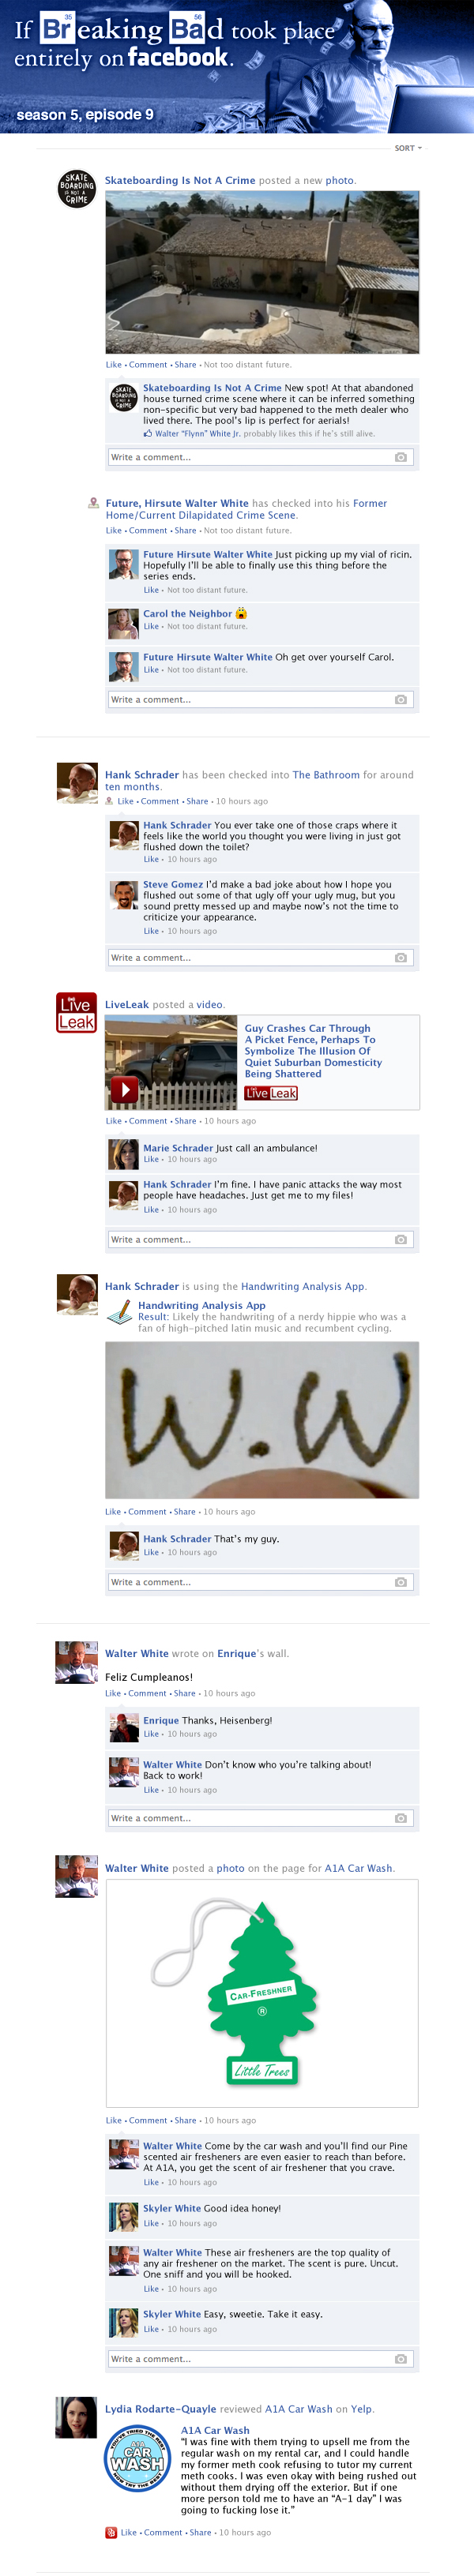 If Breaking Bad took place entirely on Facebook - Season 5, Episode 9.